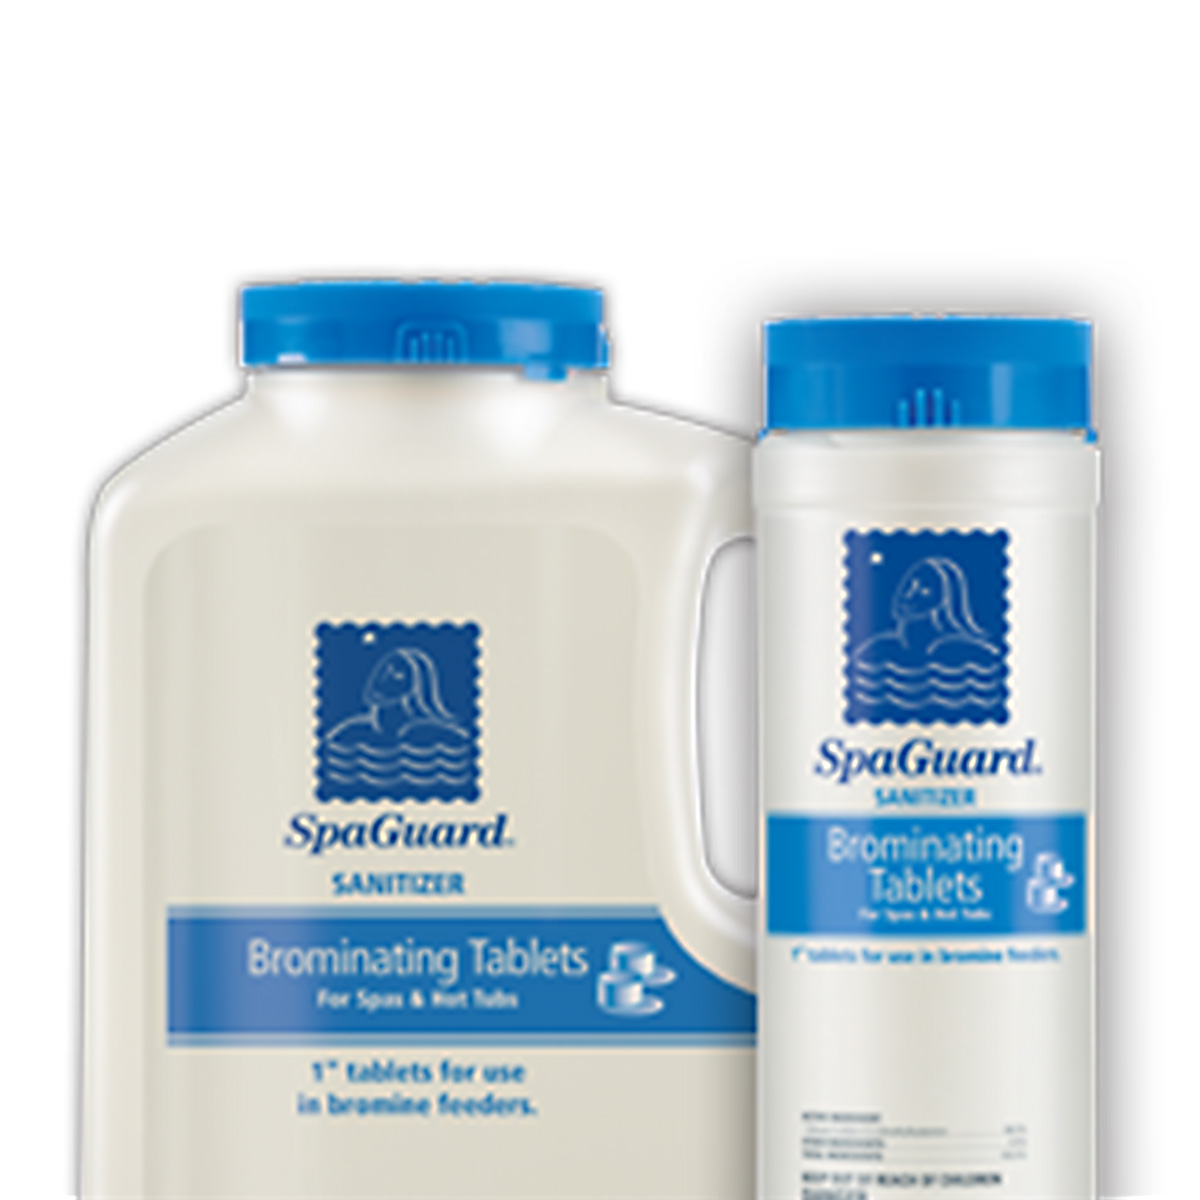 spaguard brominating tablets instructions